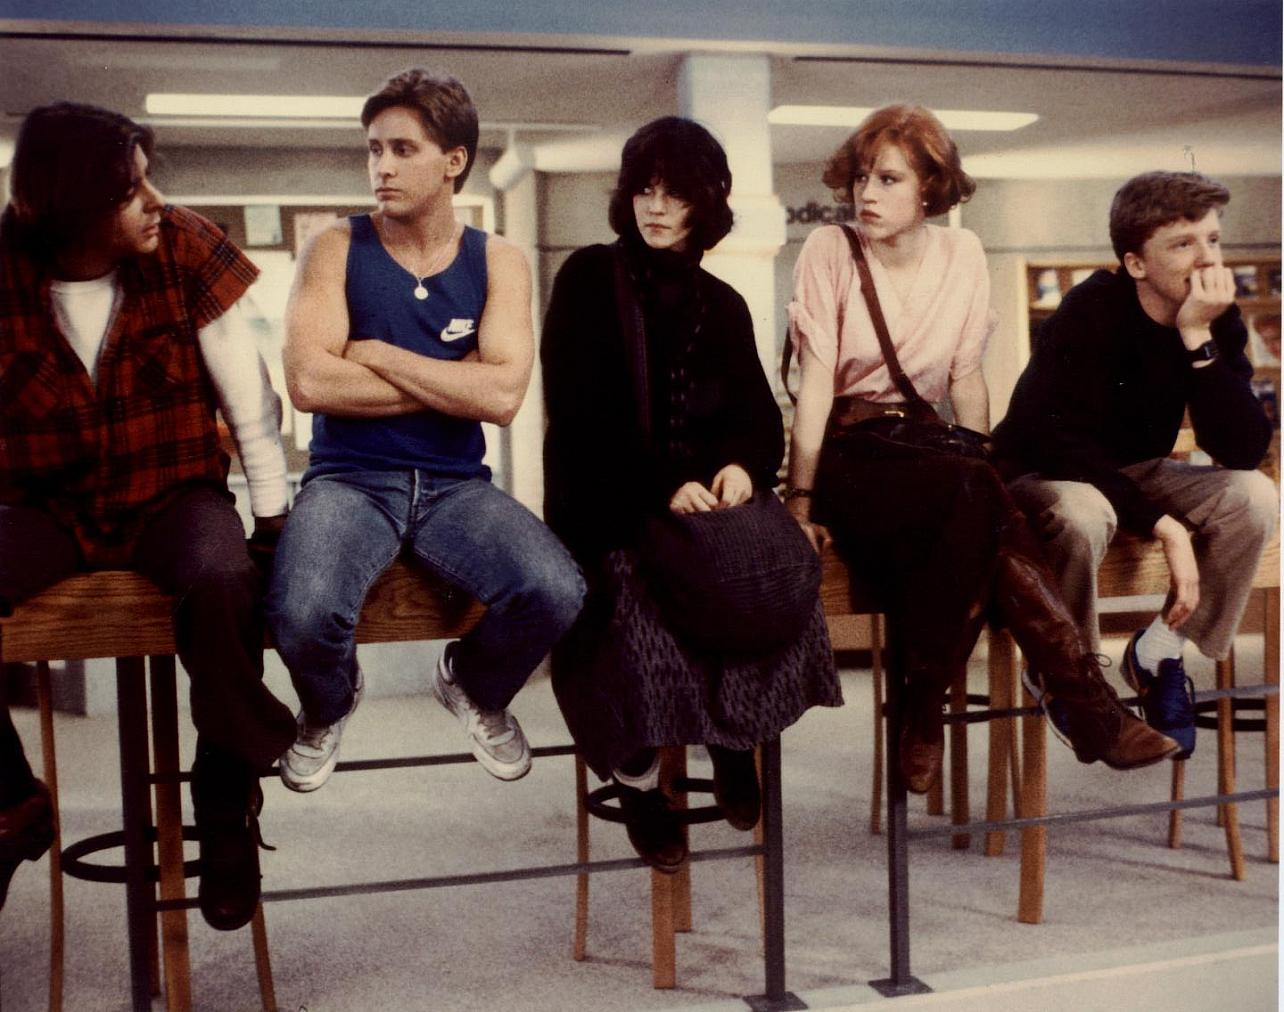 the_breakfast_club_1985_1284x1024_4870461